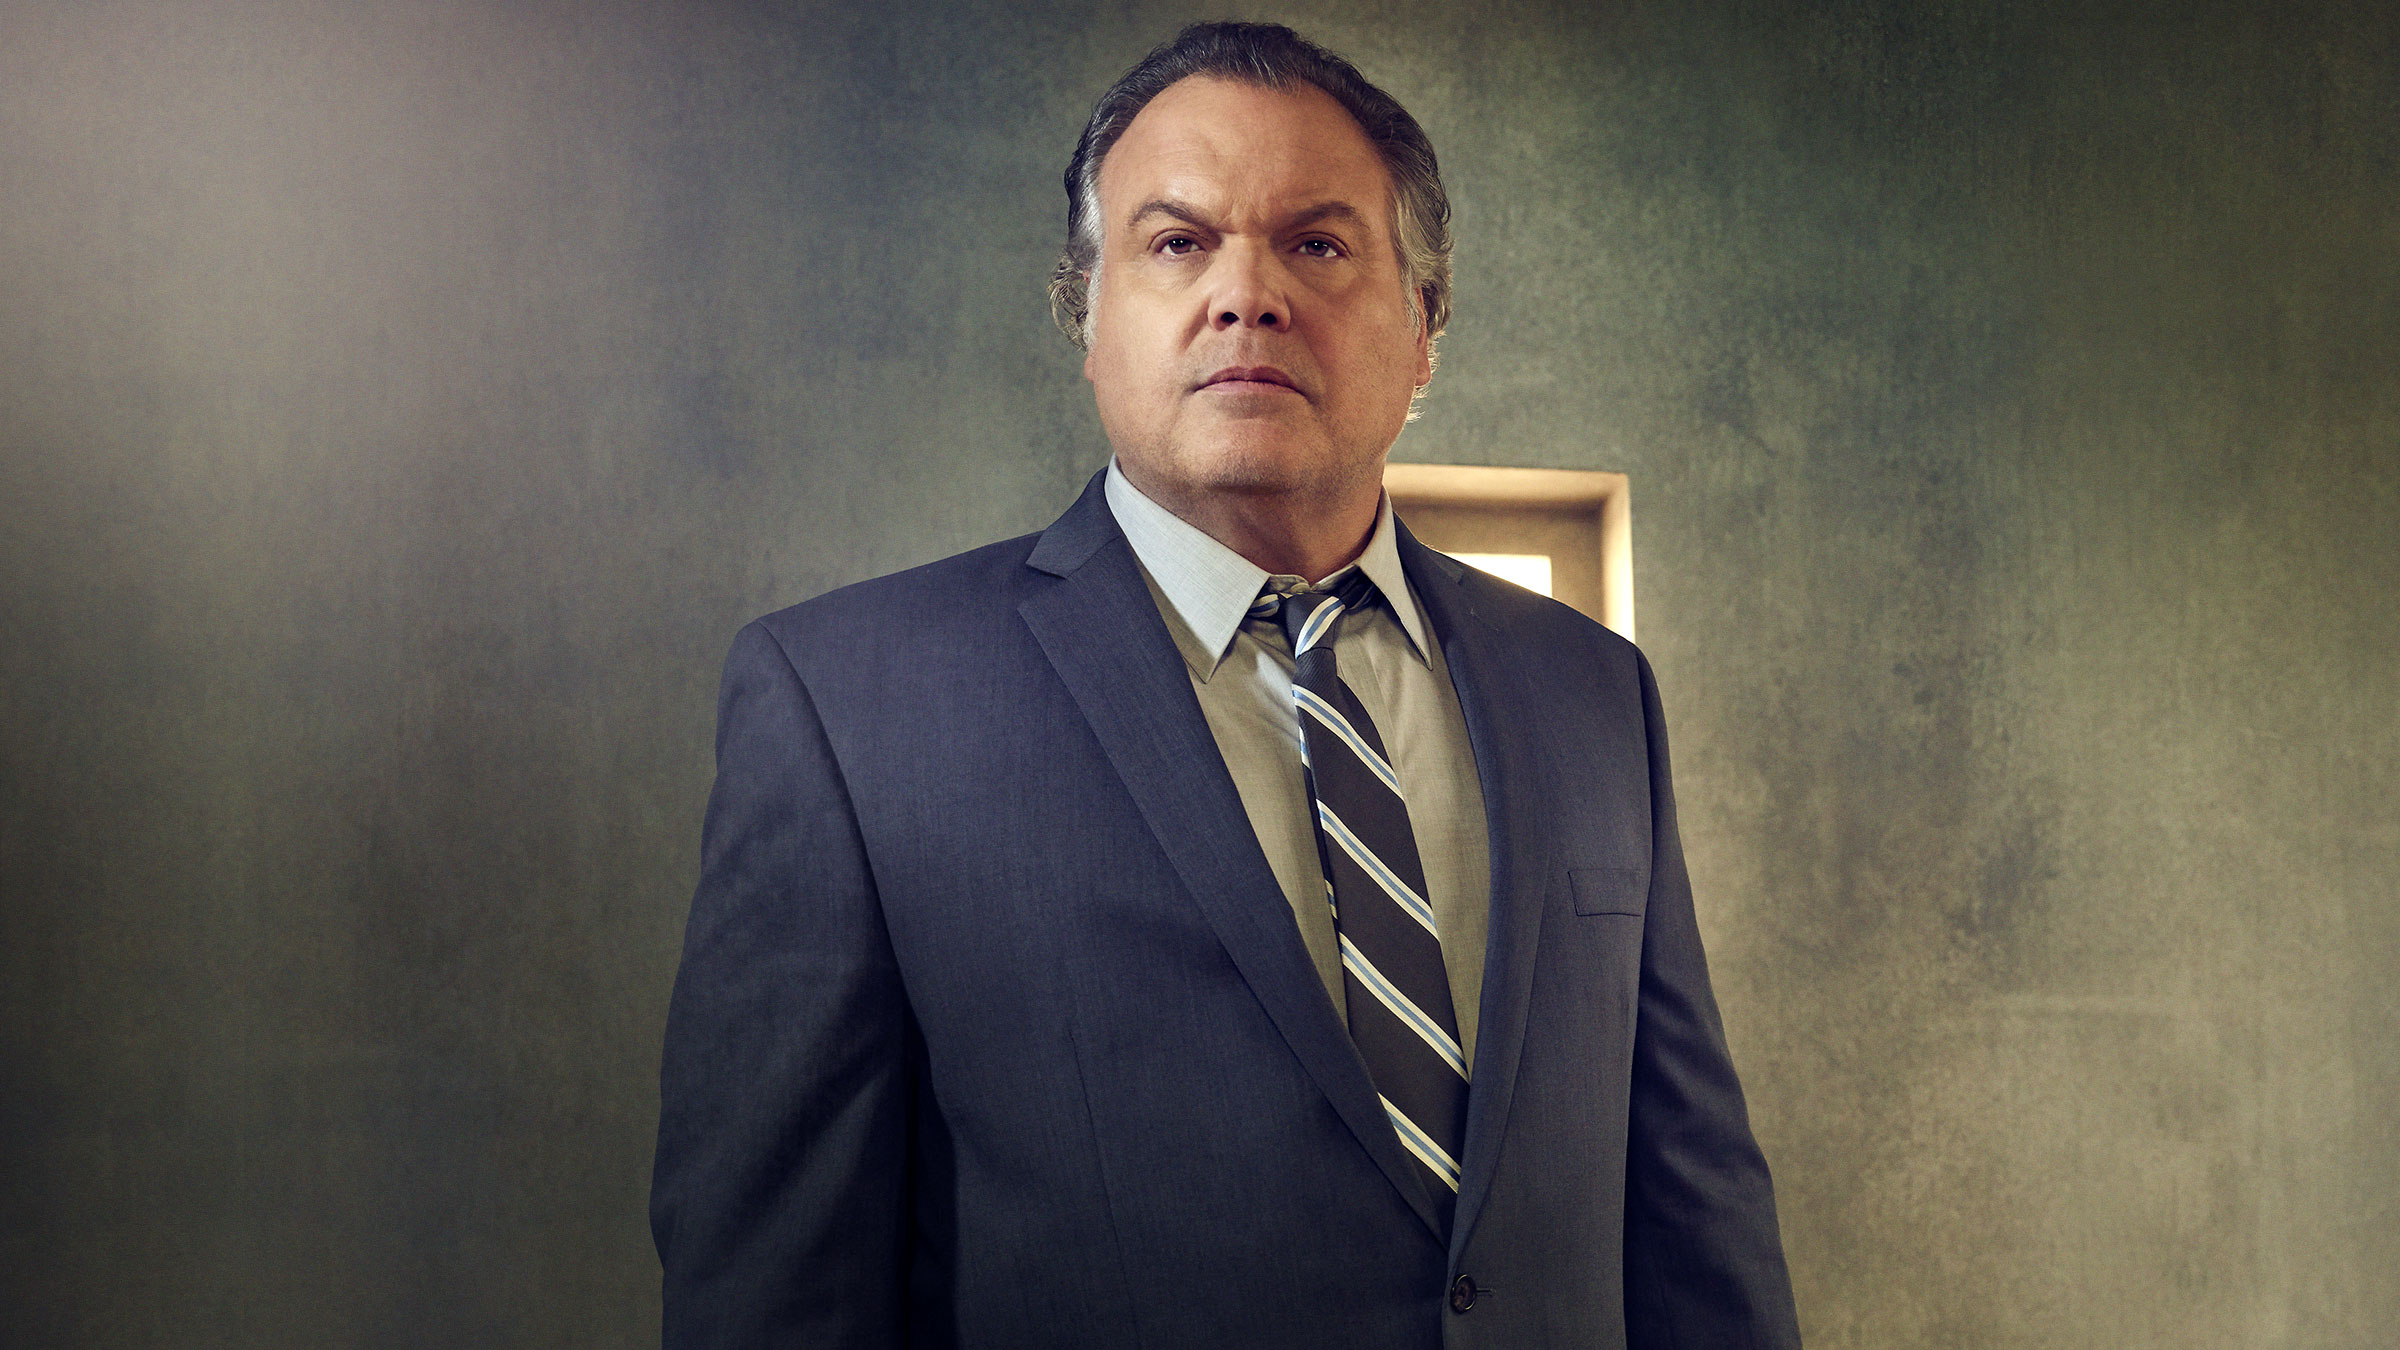 Vincent D'Onofrio as Sgt. Ian Lynch